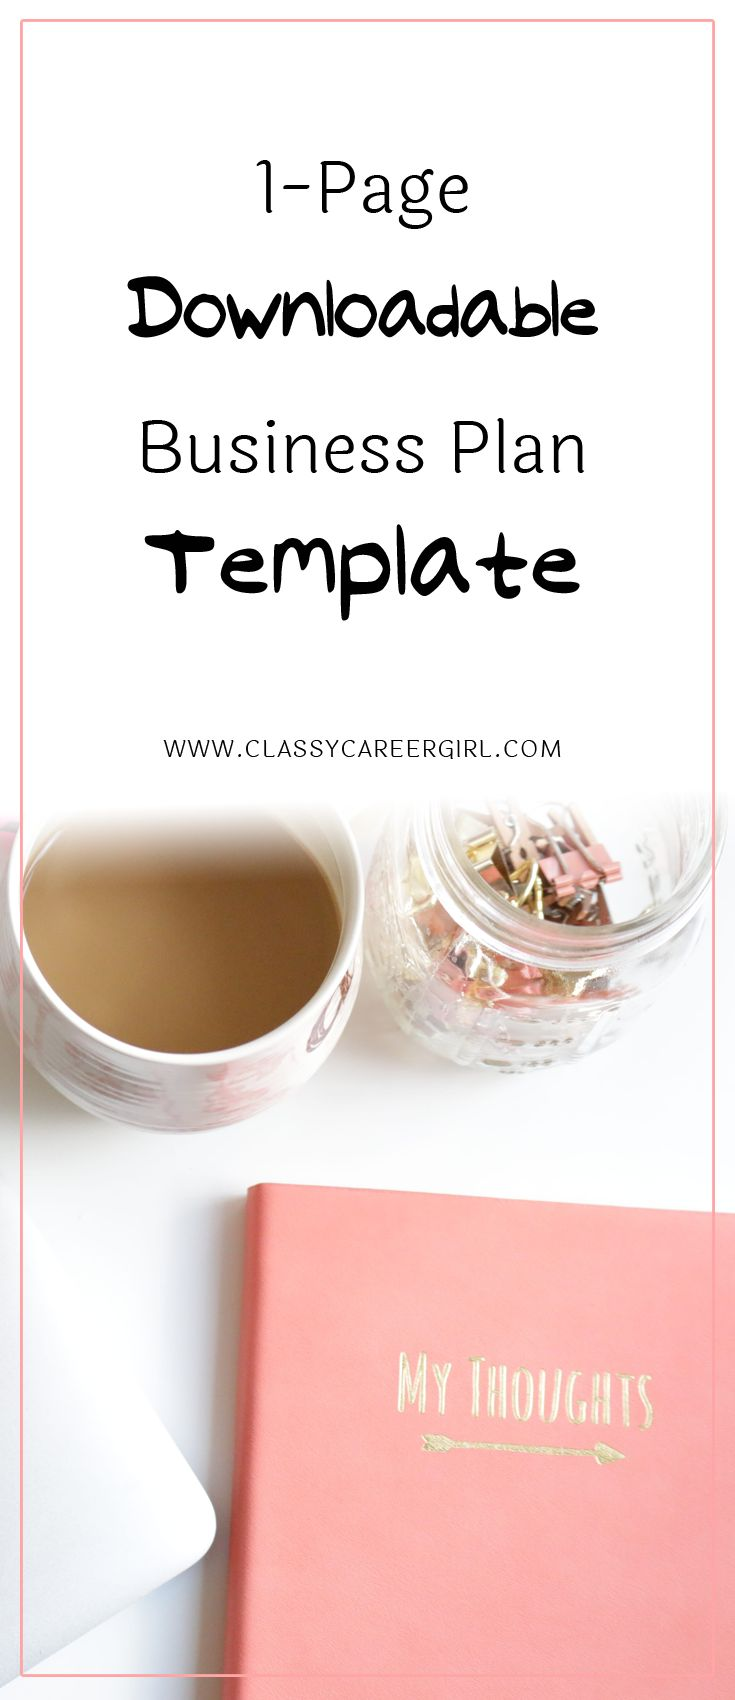 one page downloadable business plan template starting a business